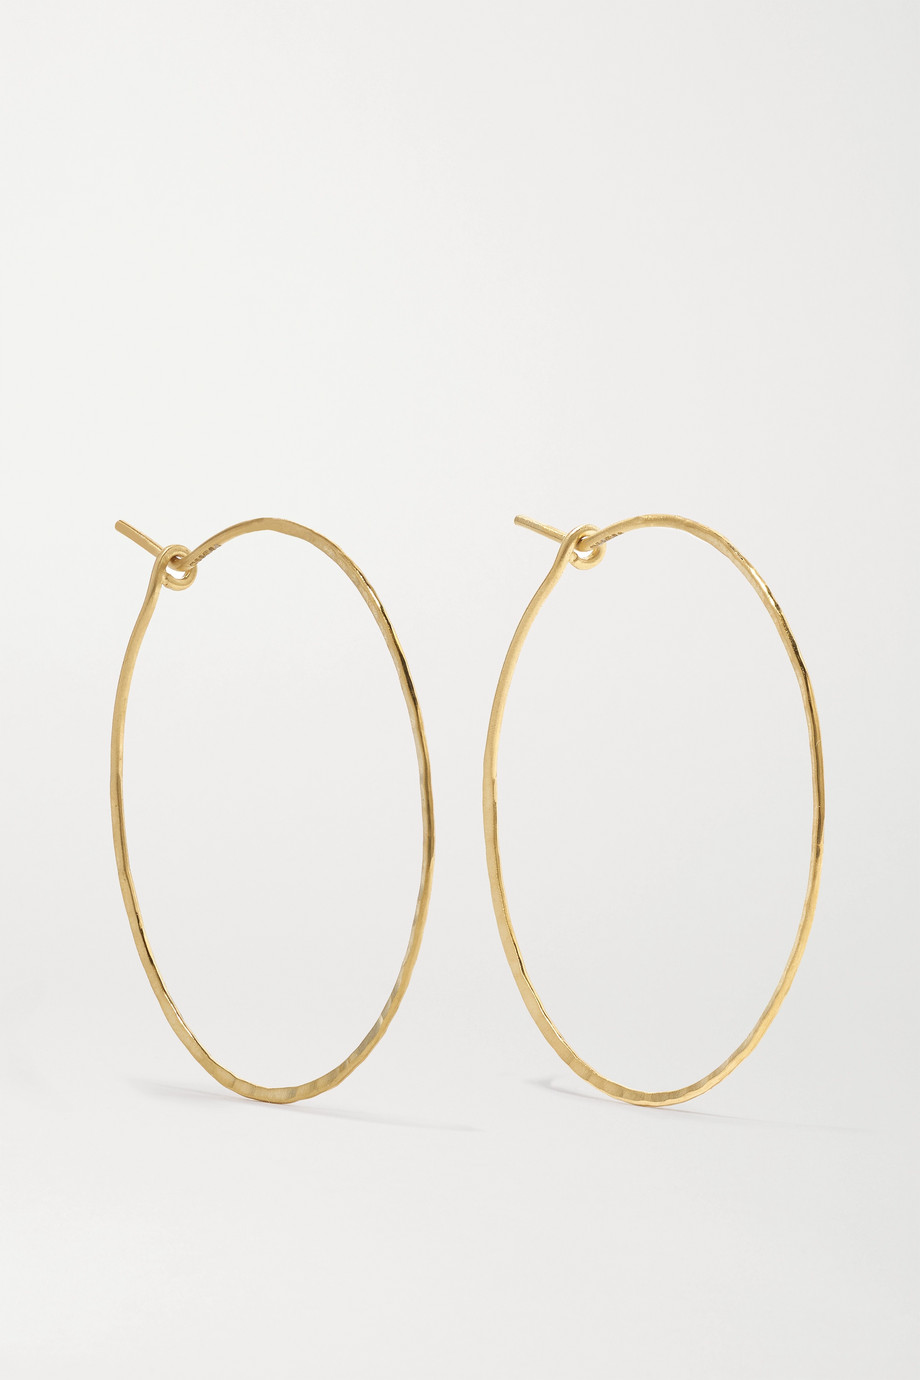 Brooke Gregson 18-karat gold hoop earrings